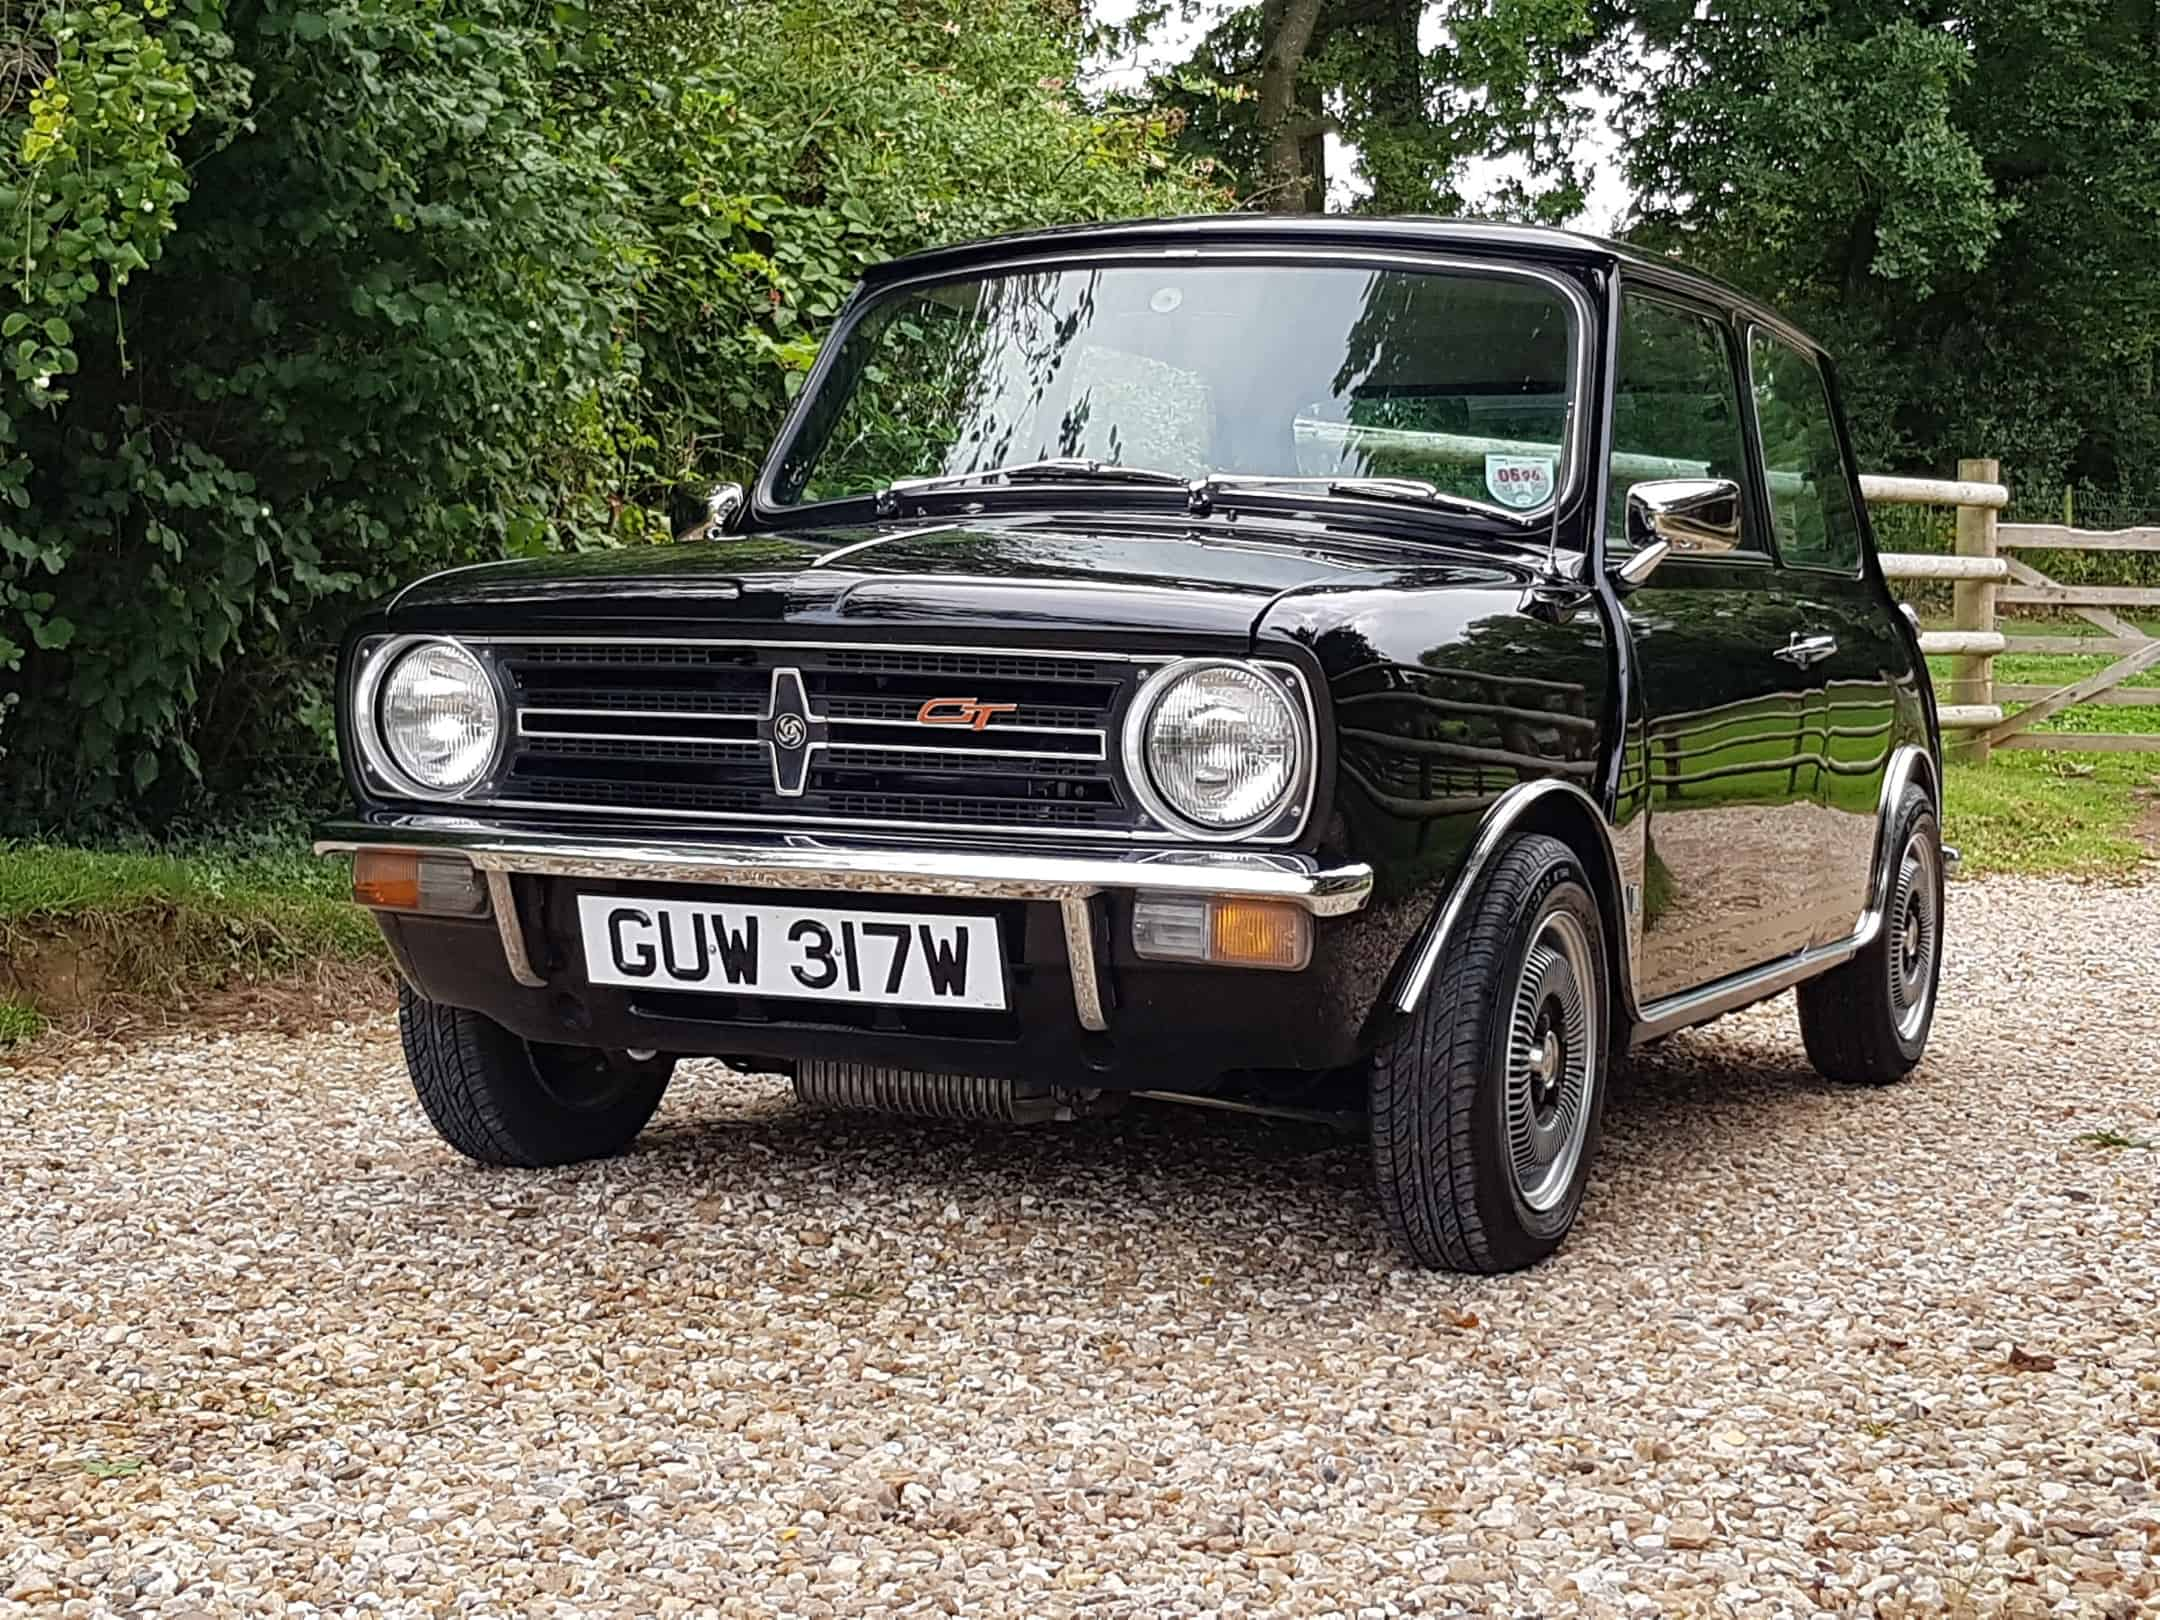 ** NOW SOLD ** Outstanding Austin Mini 1275 GT In Black With Gold Stripes!